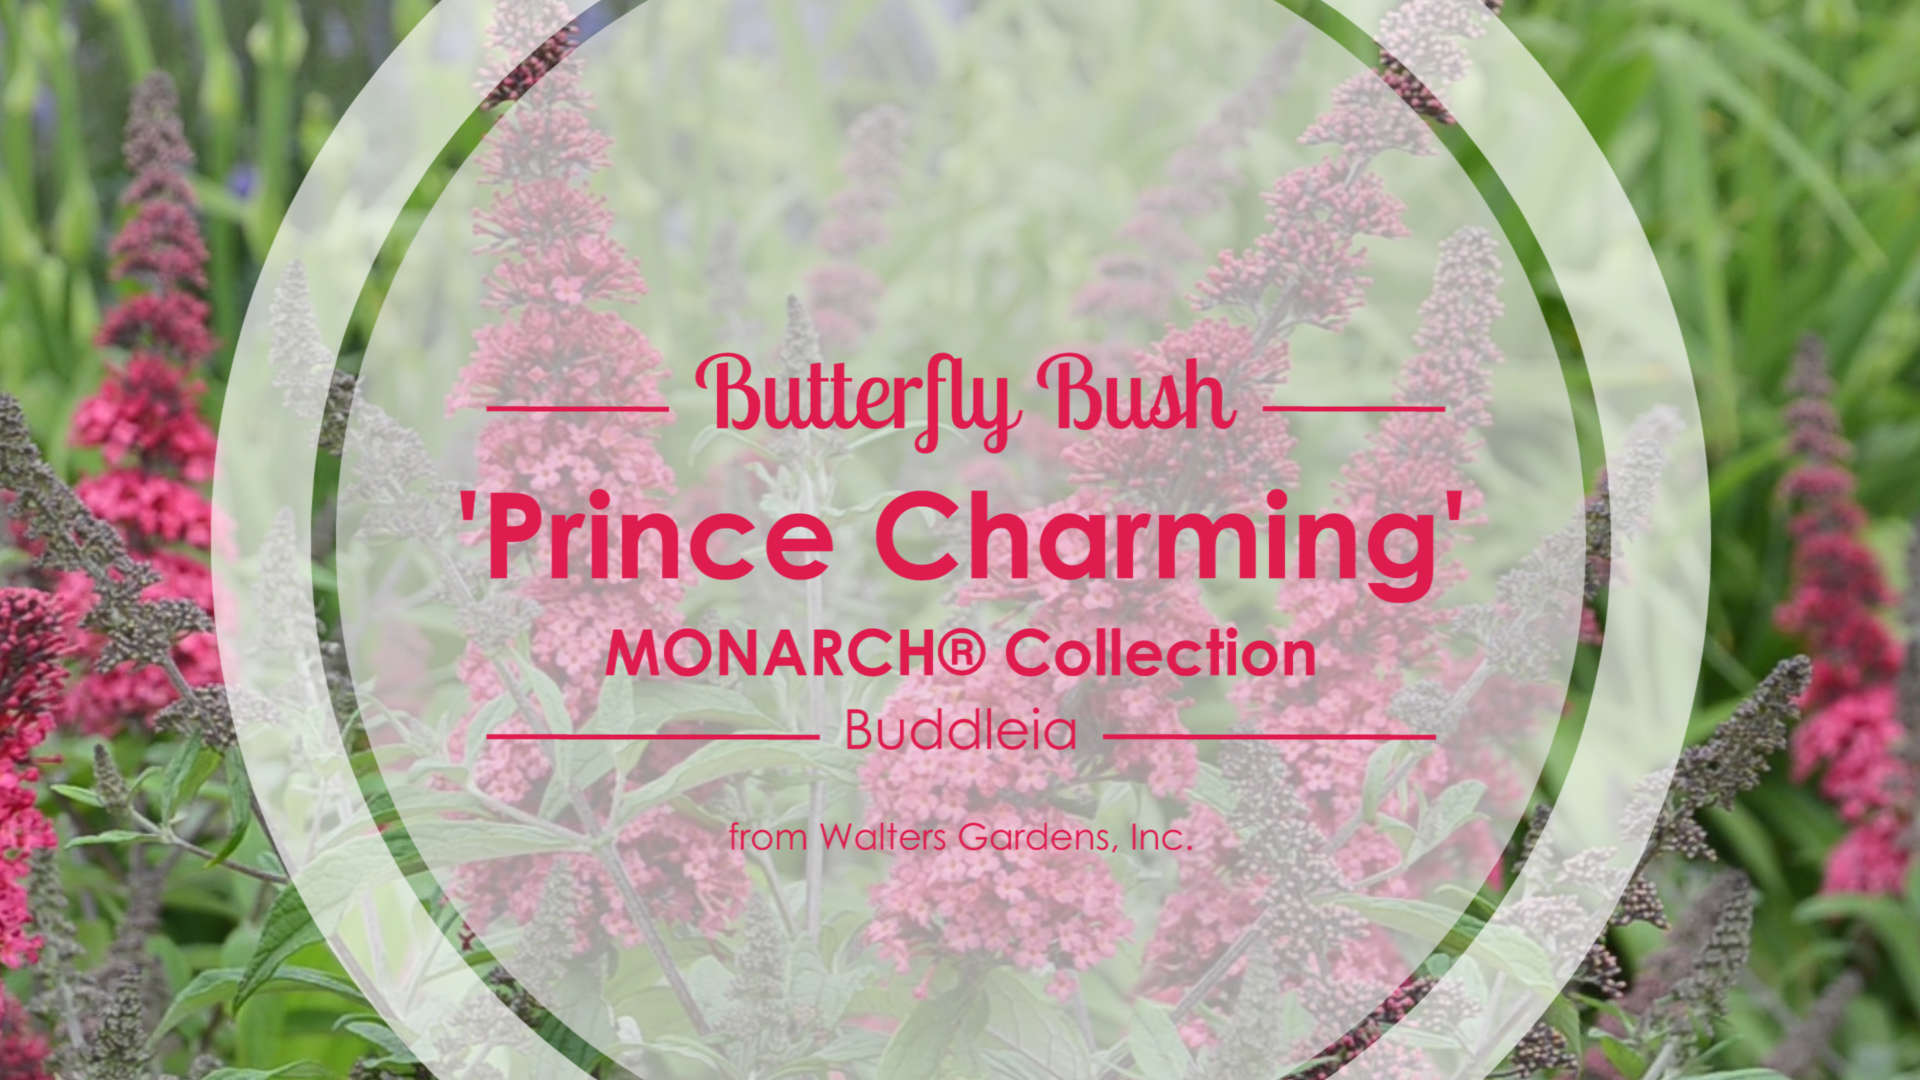 Buddleia 'Prince Charming' Butterfly Bush